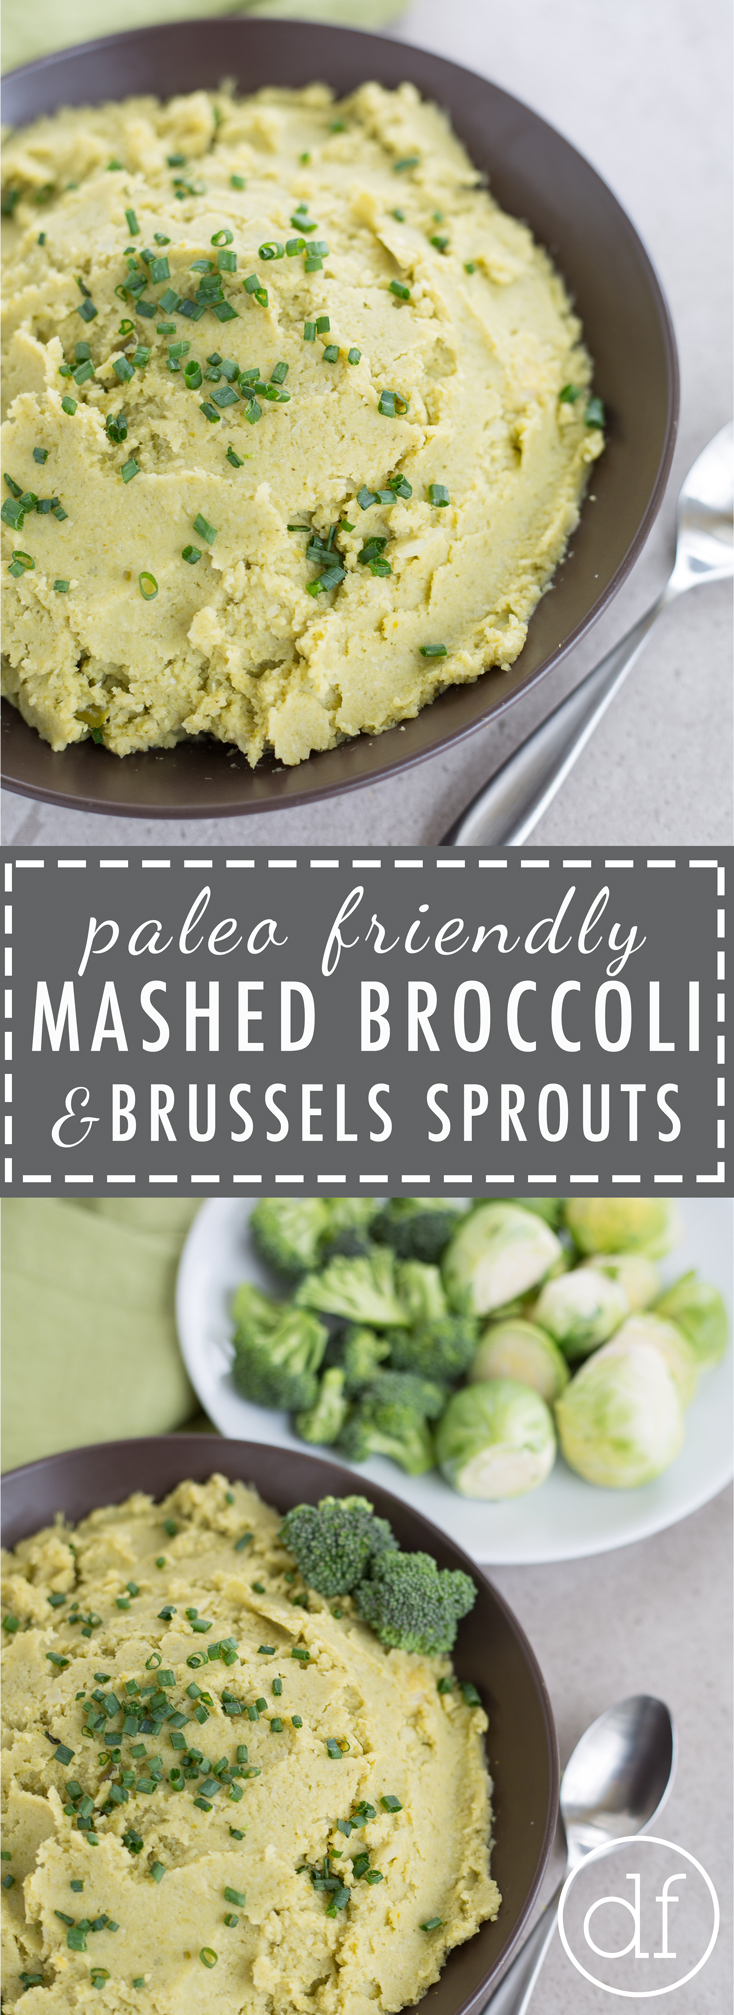 brussles sprouts, define fettle, paleo side dishes, paleo recipes, whole30, grain free, gluten free, dairy free, vegan, easy recipes,